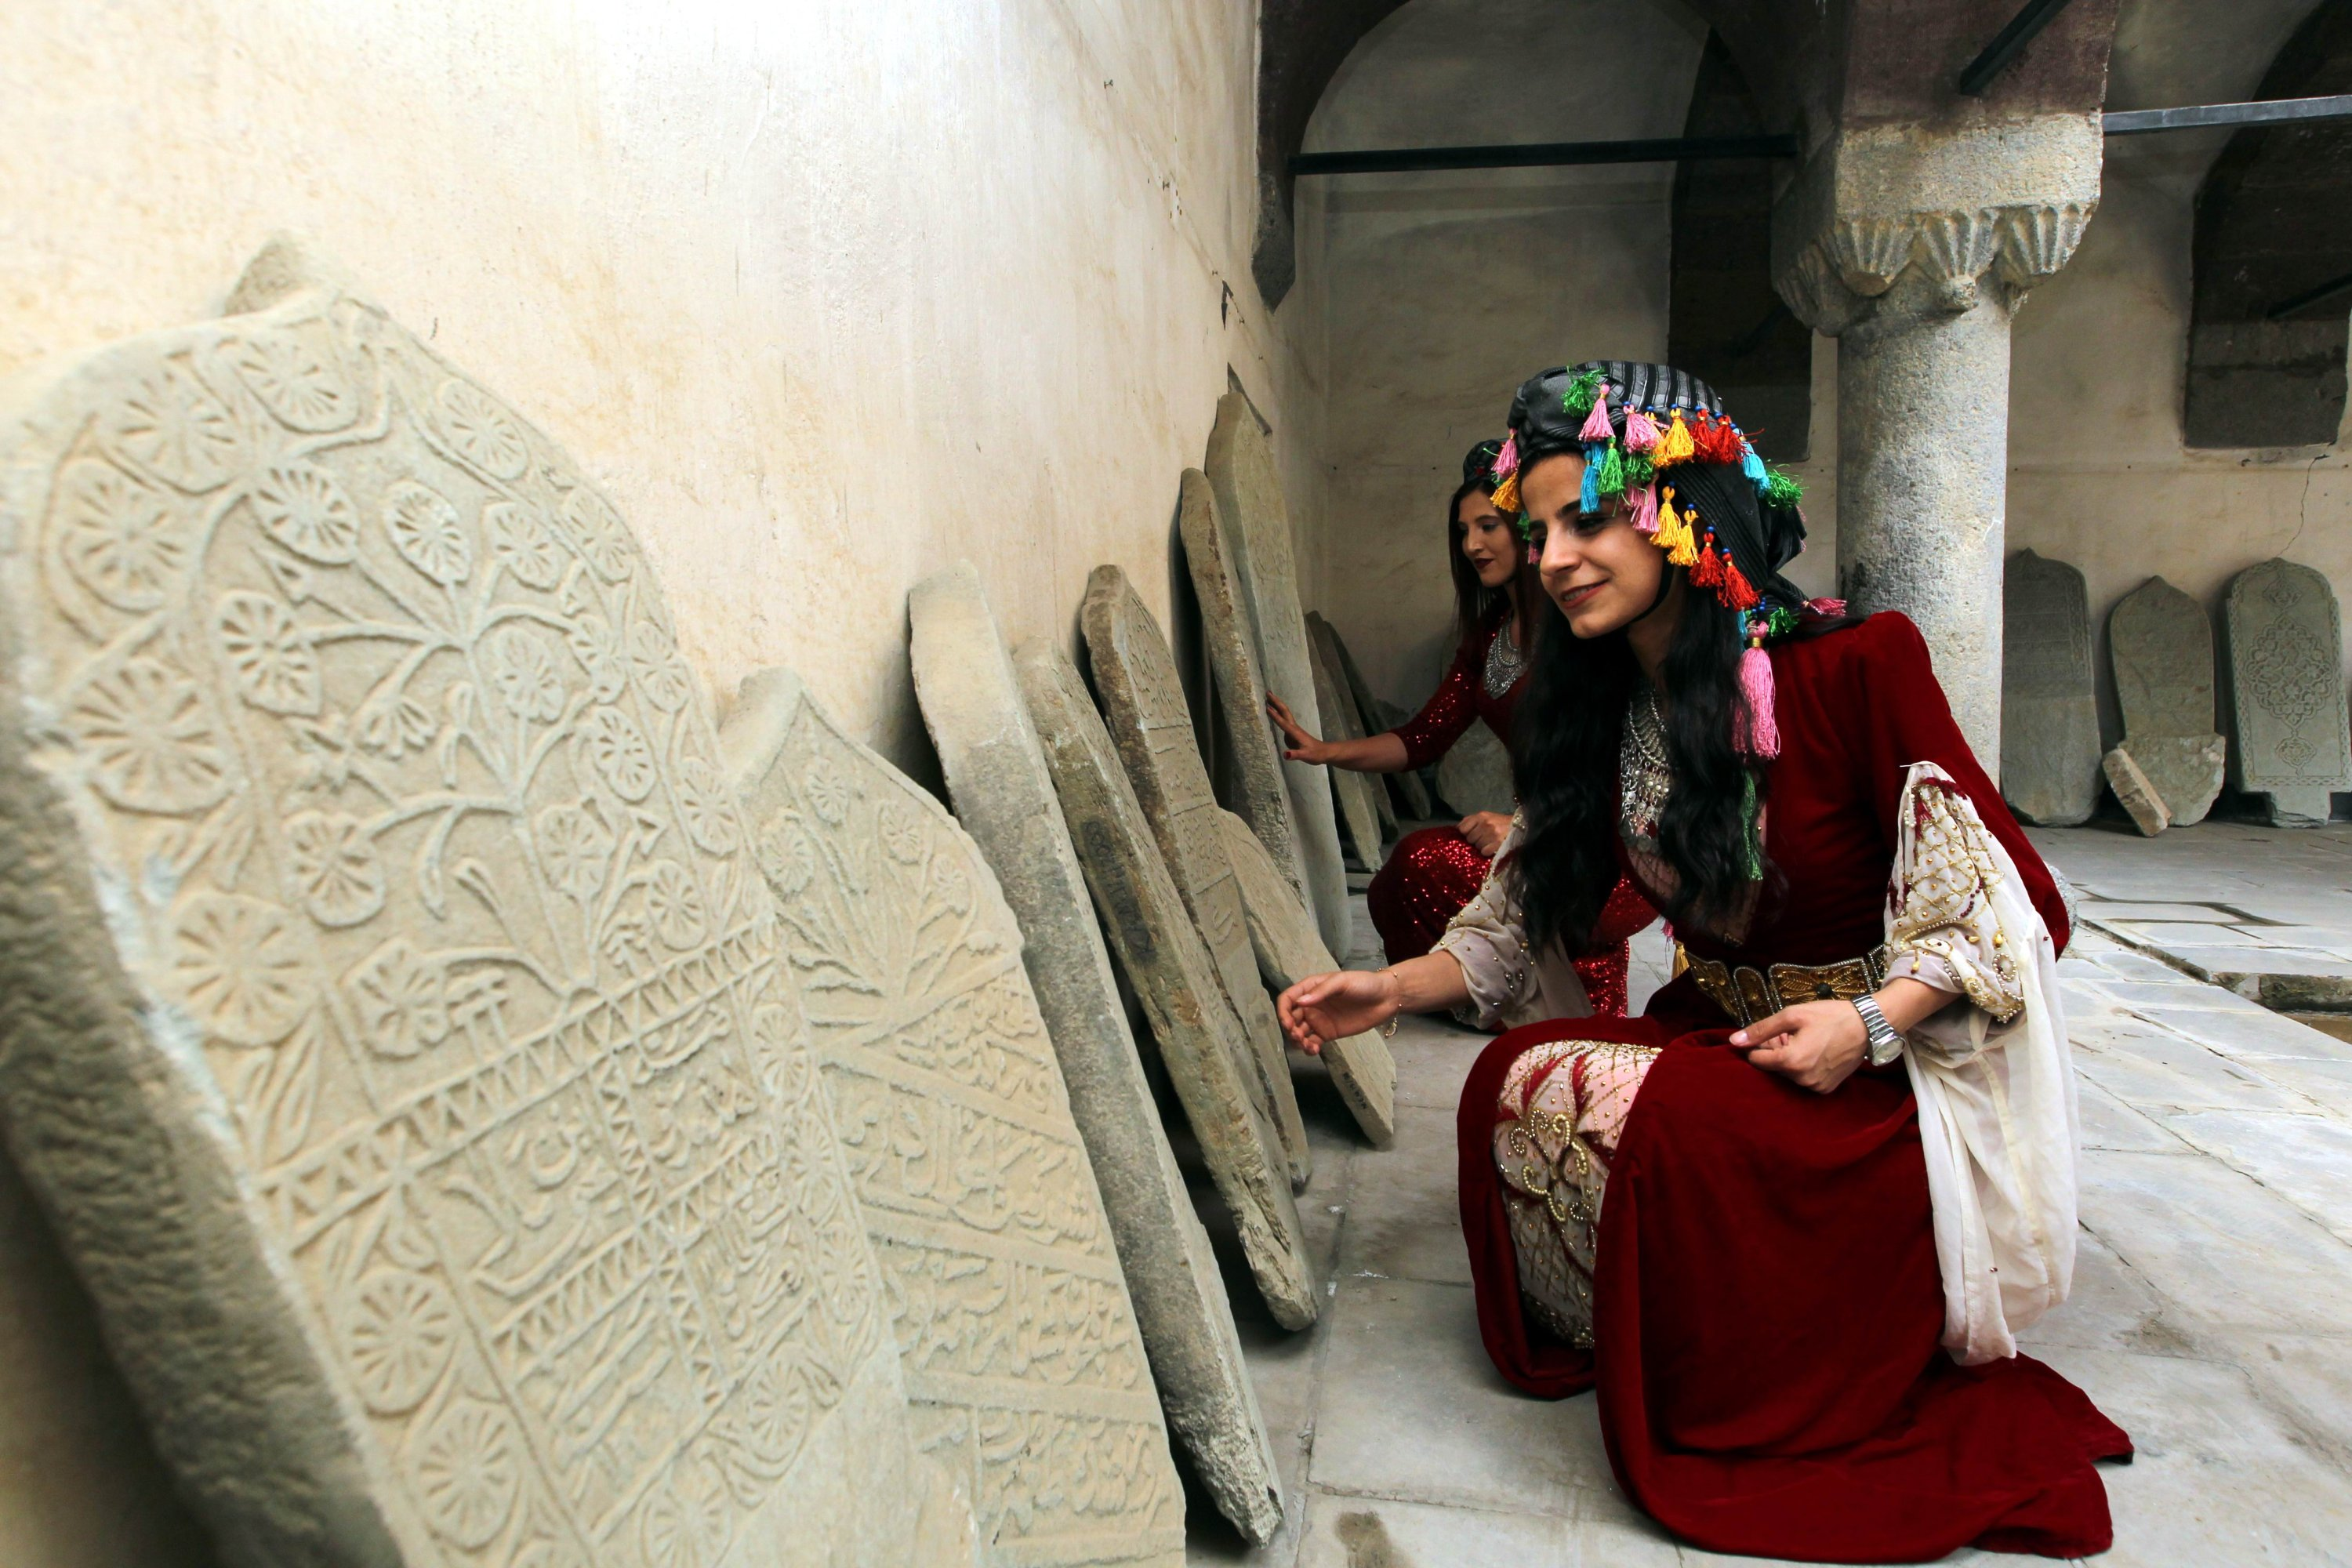 Works reflecting the history of Hakkari will be featured in the museum. (AA PHOTO)